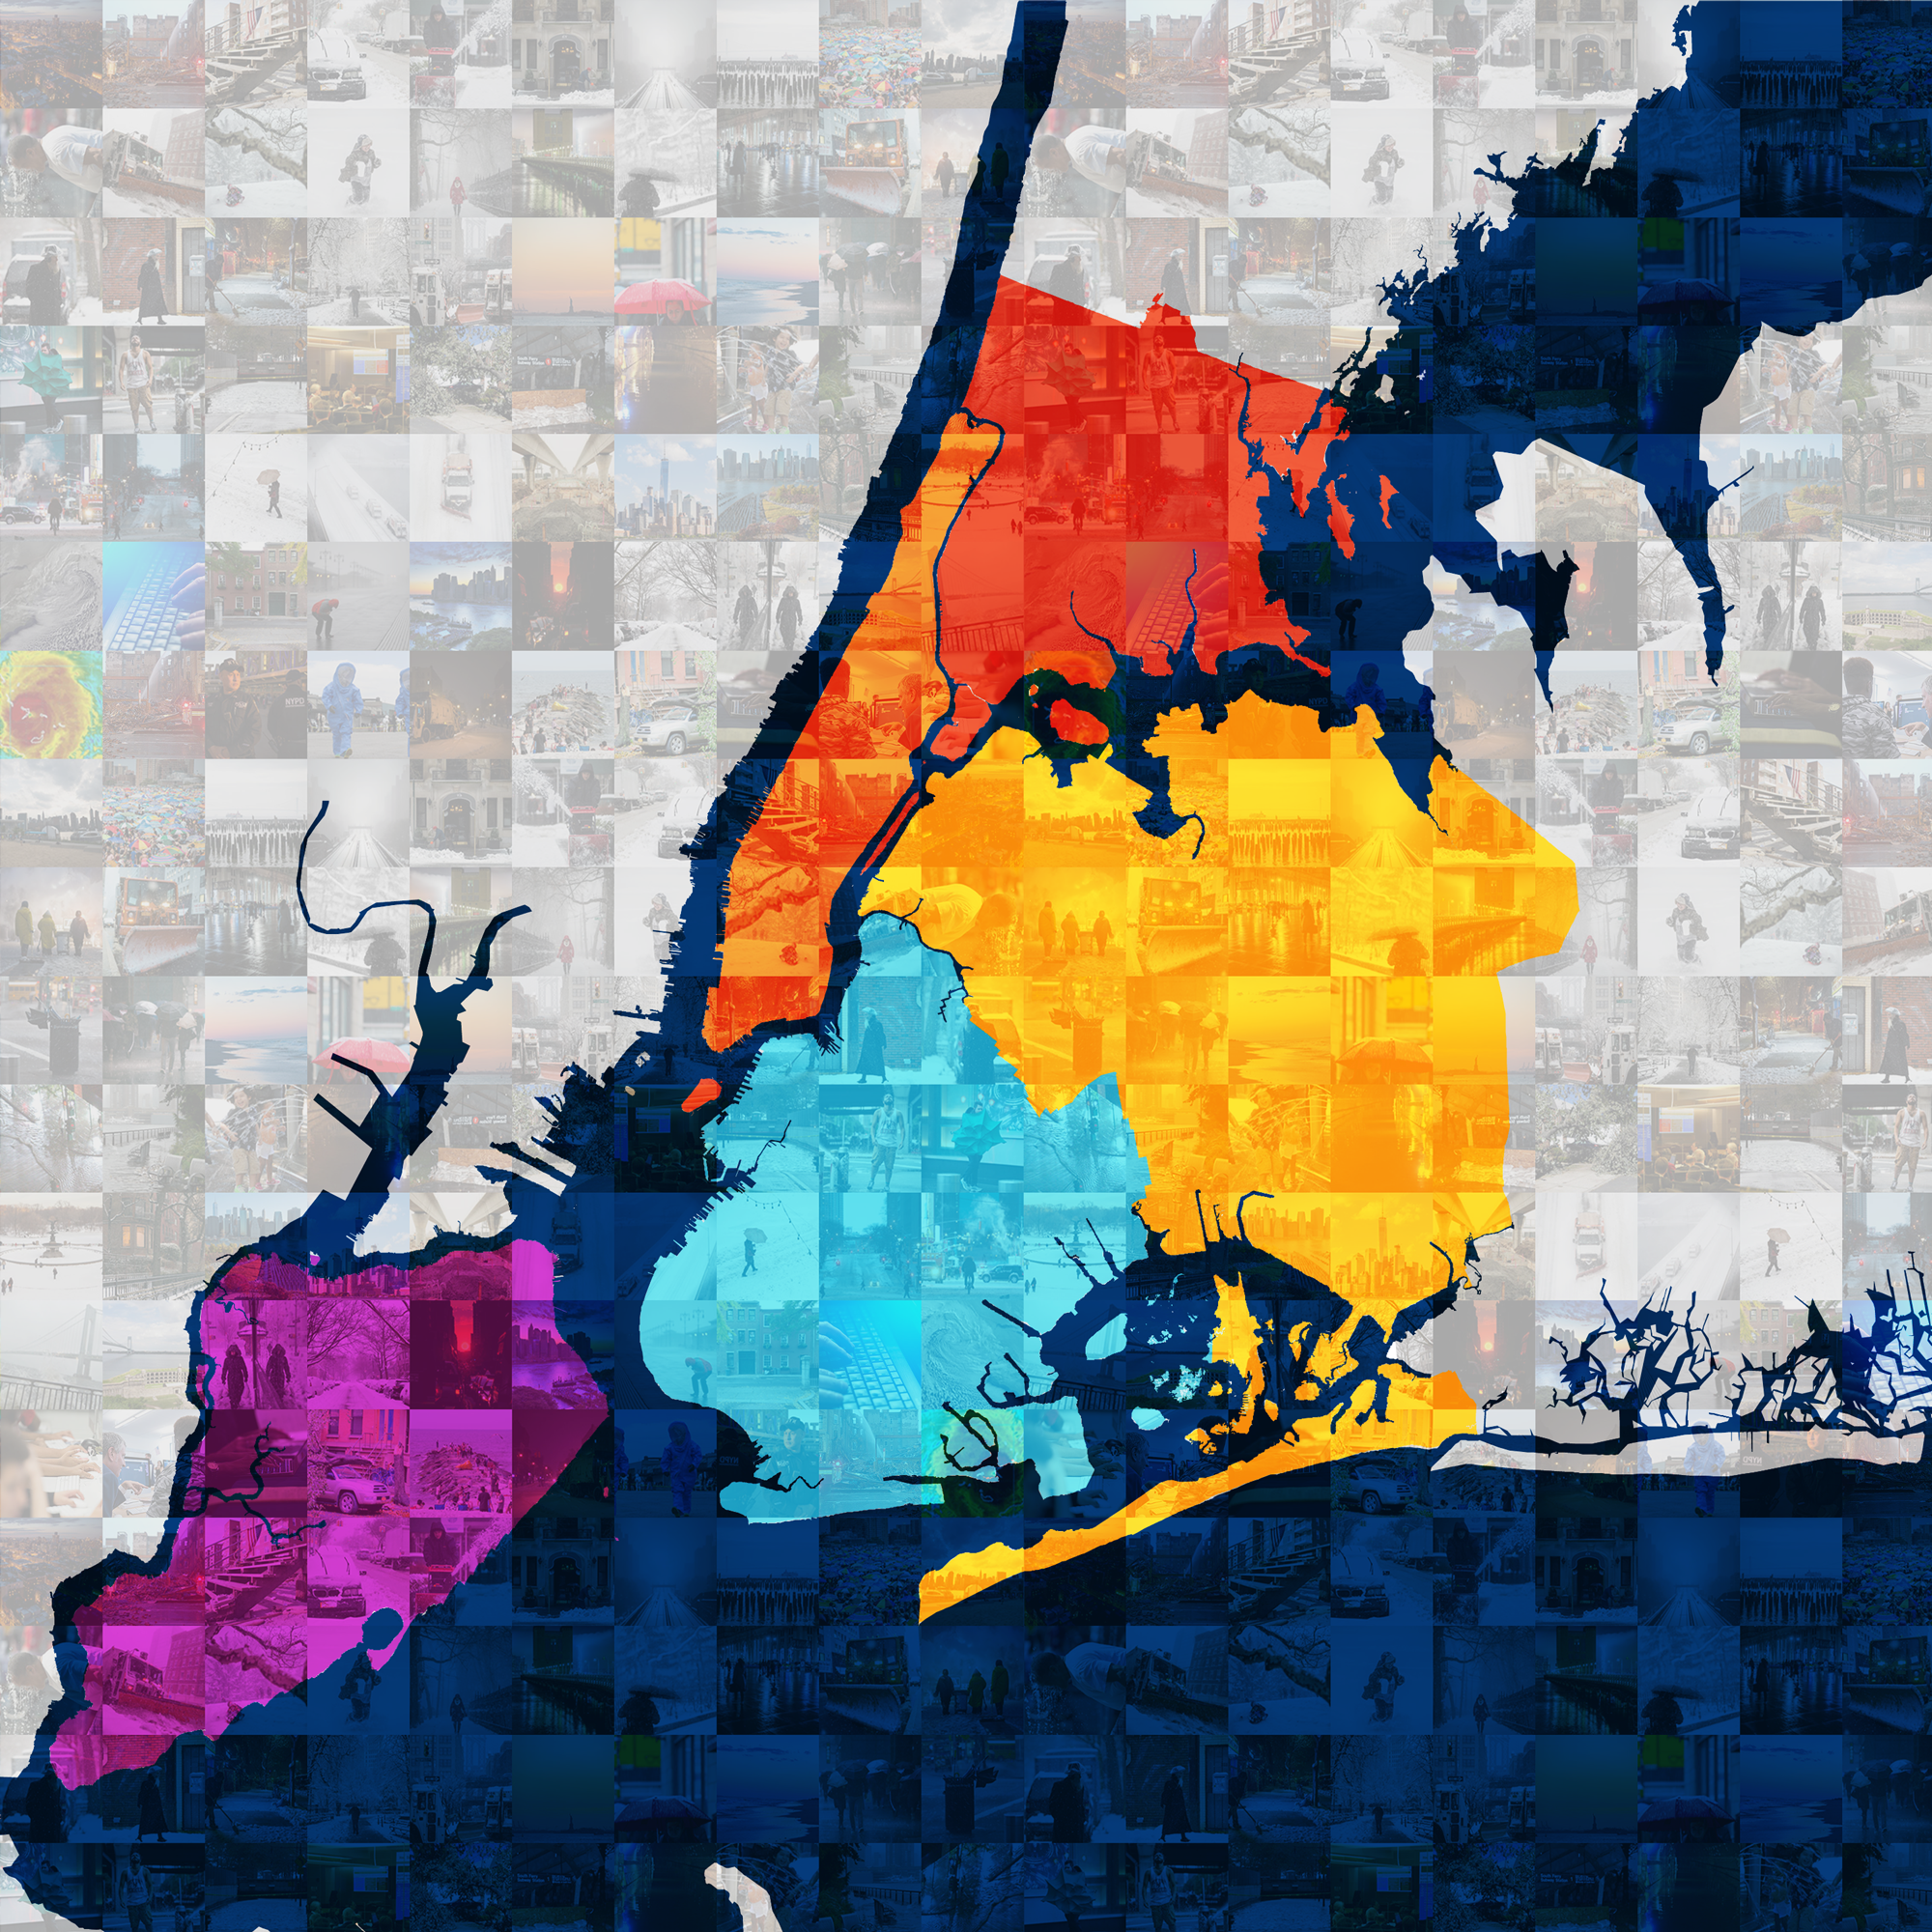 NYC Mosaic Map of All Hazards